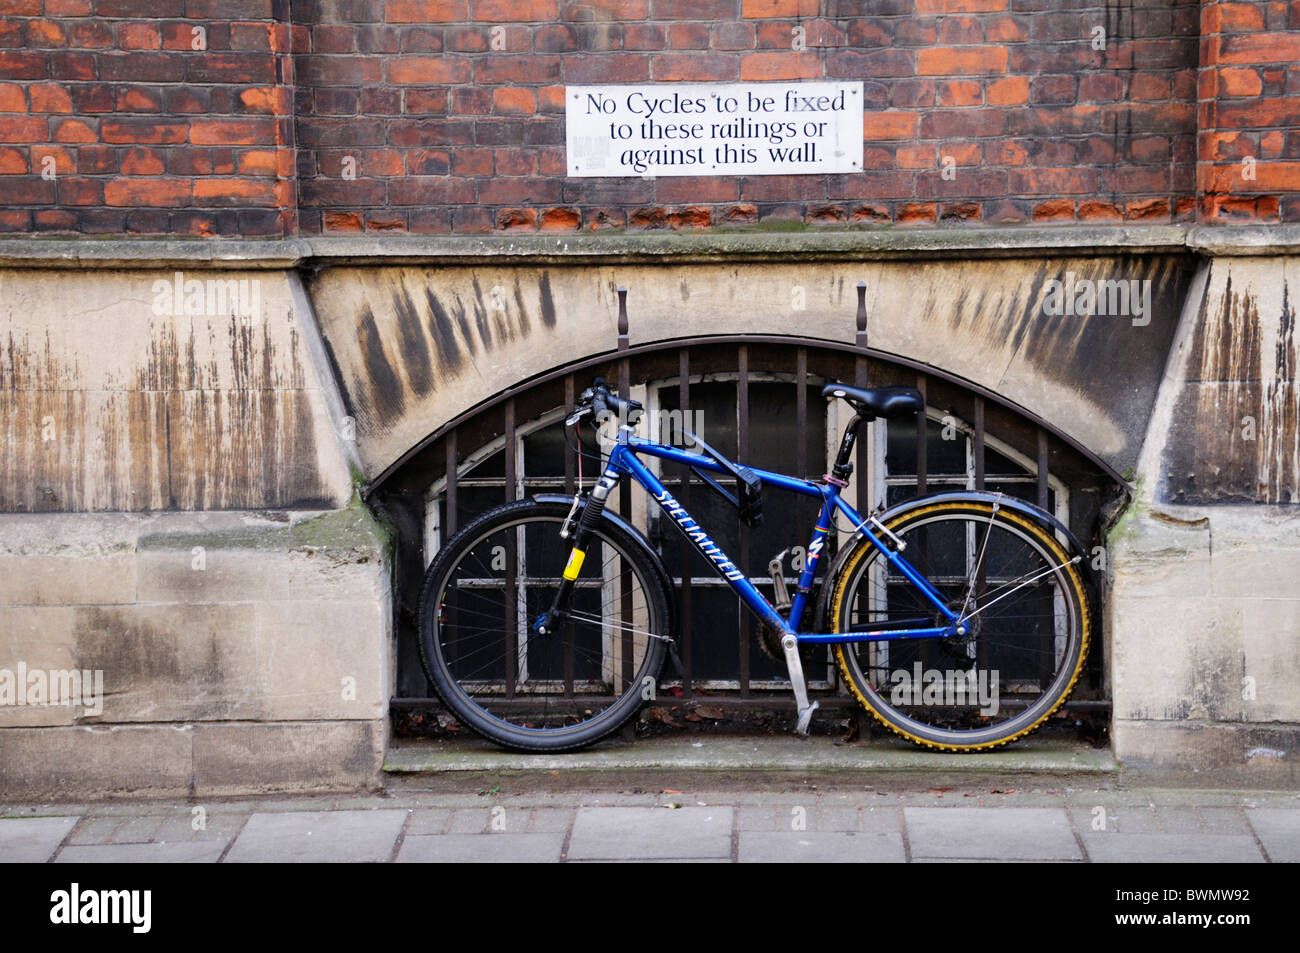 No Cycles to be fixed to these railings or against this wall sign, with chained up bicycle below, Cambridge, England, - Stock Image